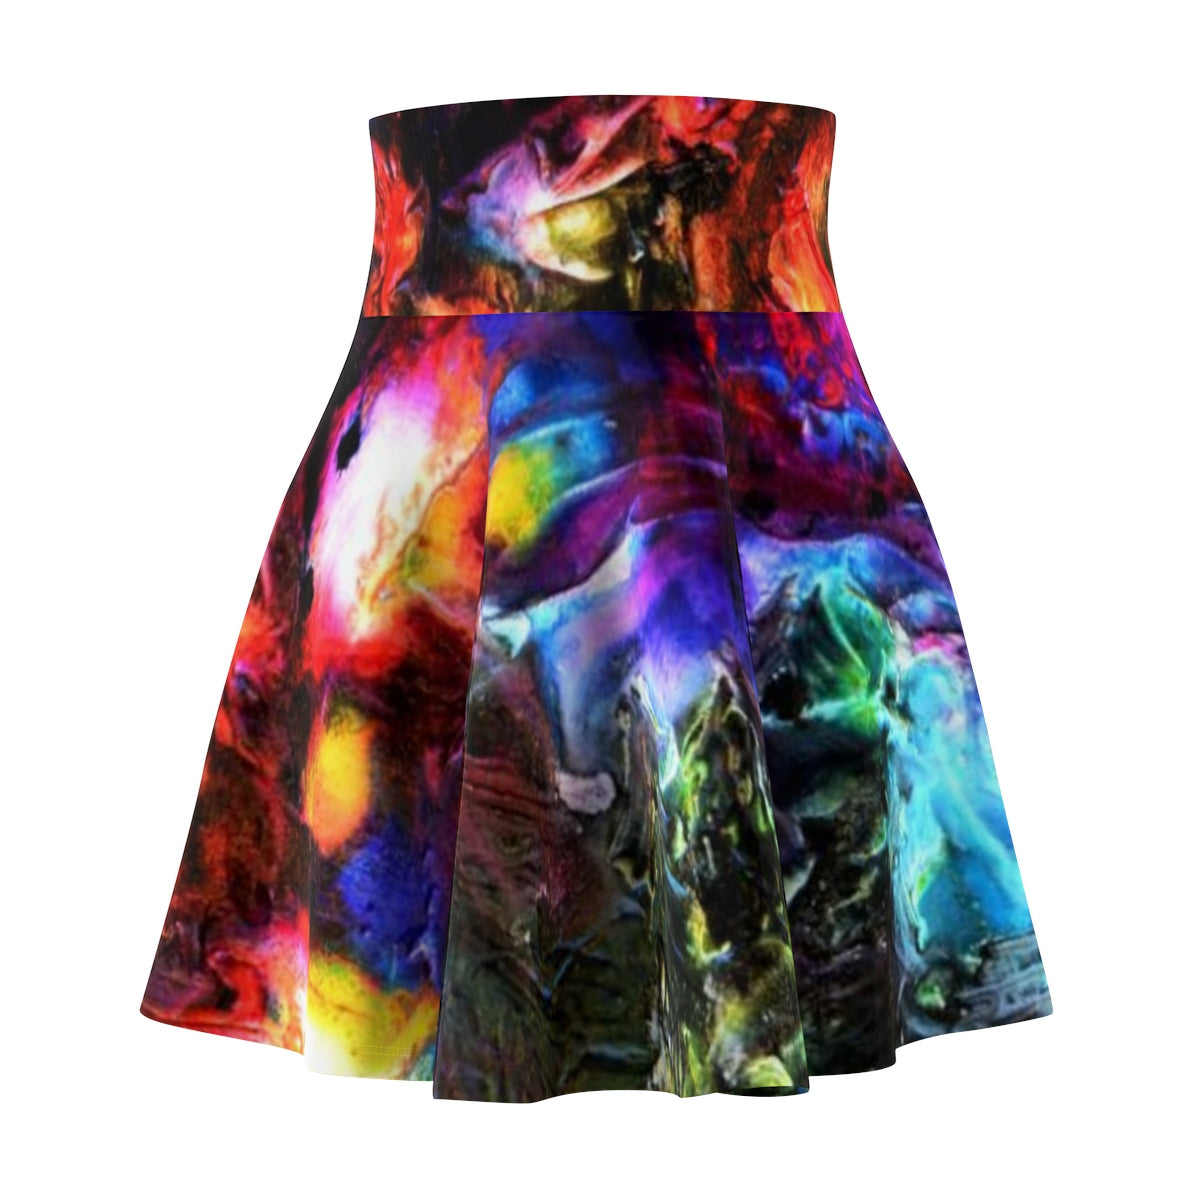 Women's Skater Skirt - 'One Night at the Pond'